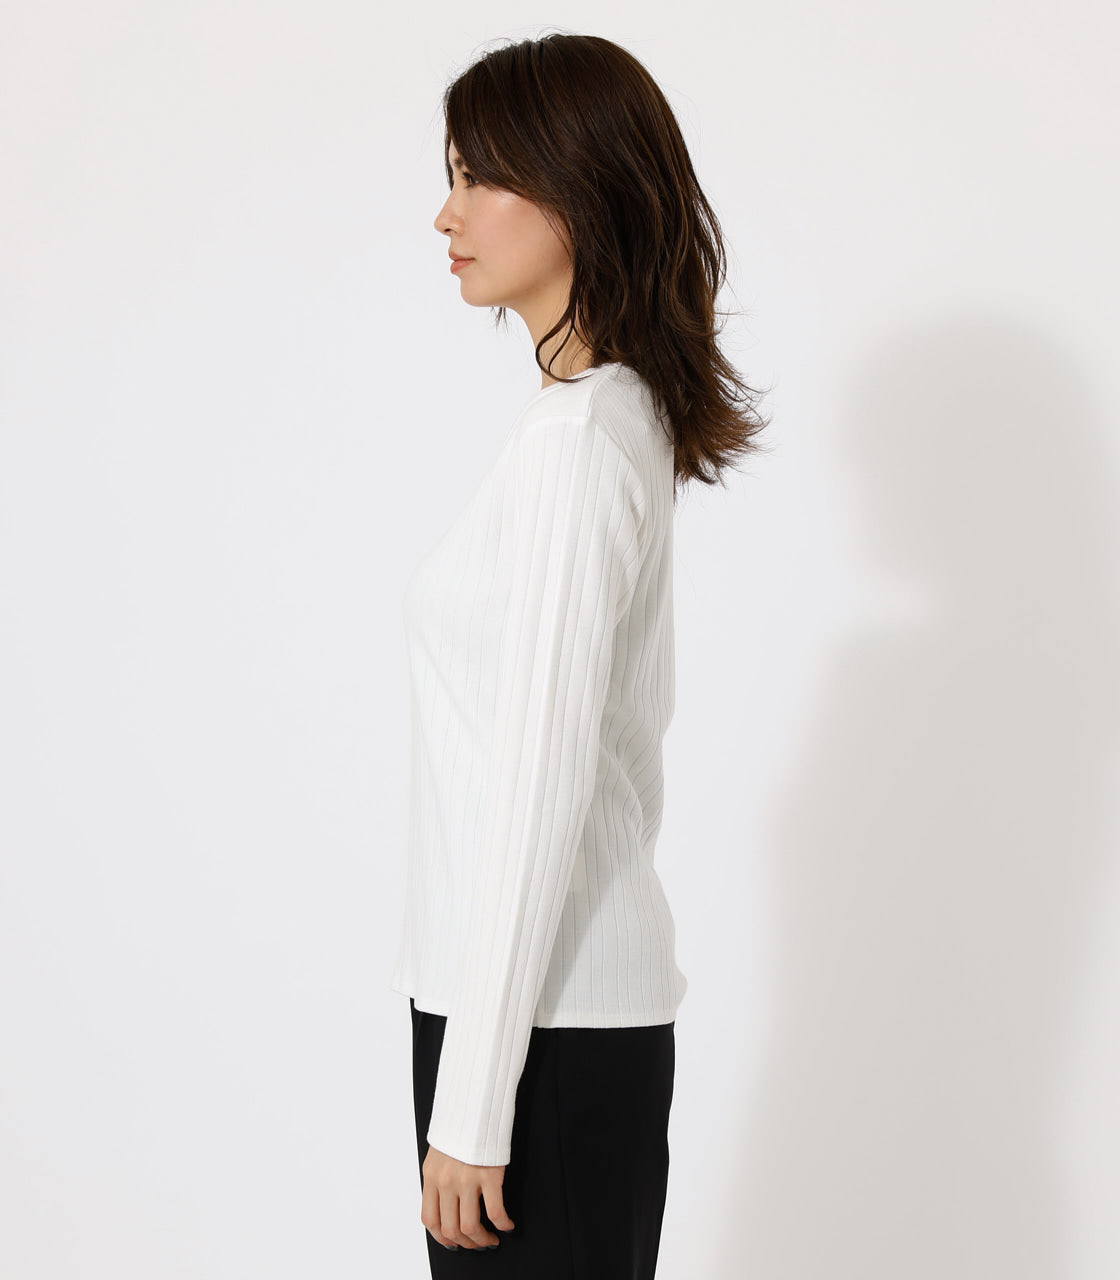 HEART NECK TOPS/ハートネックトップス 詳細画像 O/WHT 5